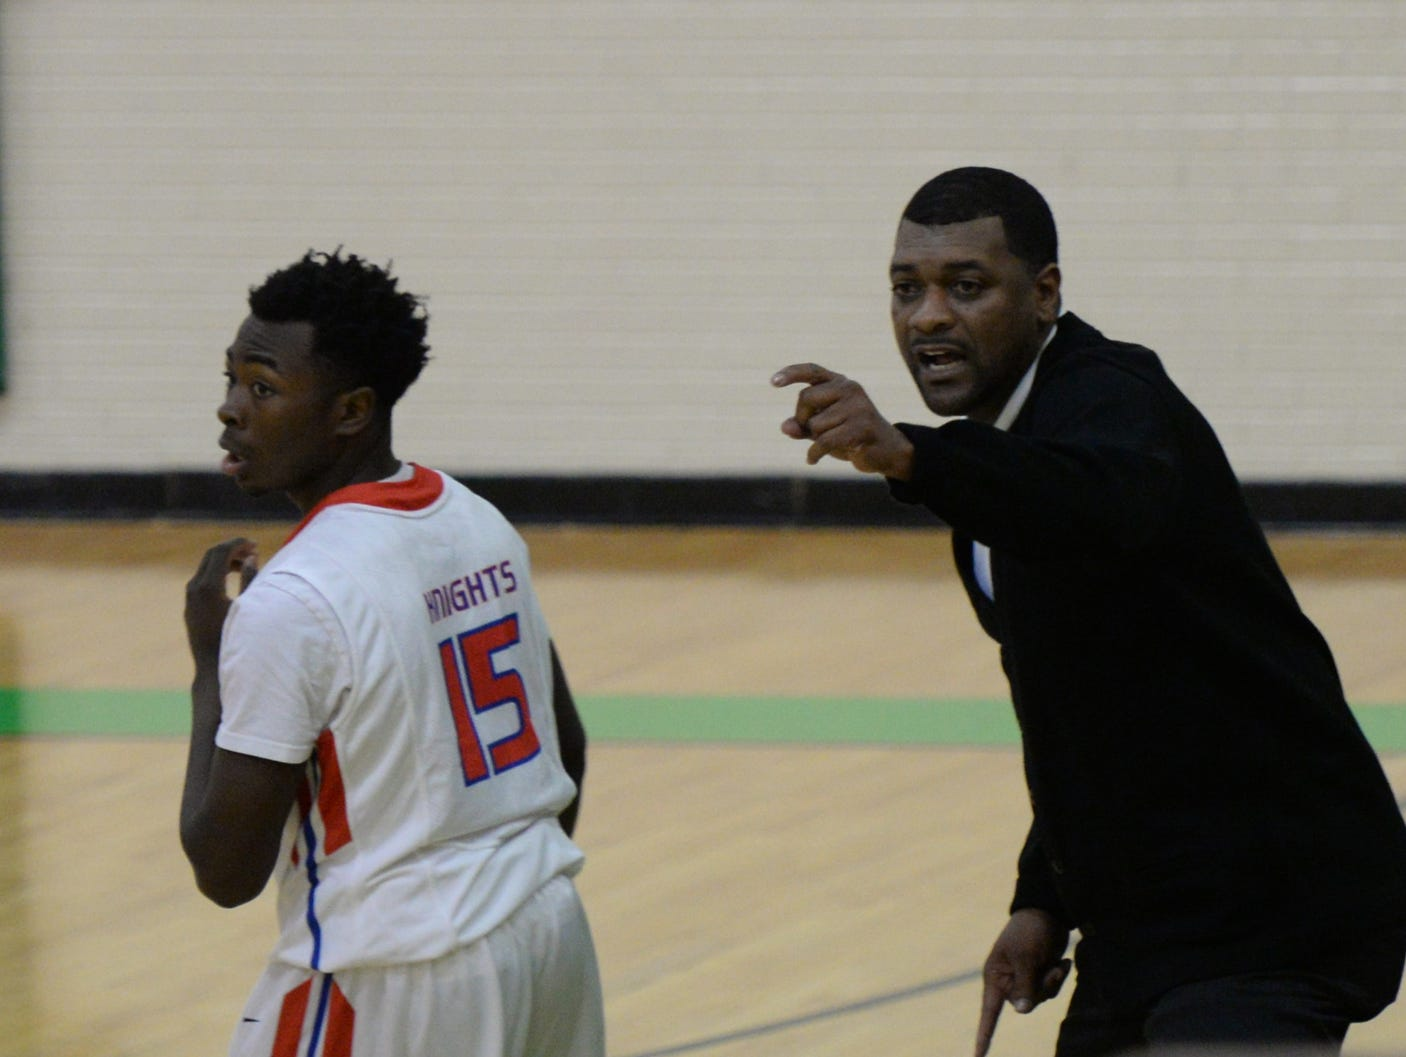 The No. 12 Knights took care of No. 21 LaGrange with ease, 81-38, to coast into the second round of the LHSAA Class 4A playoffs.